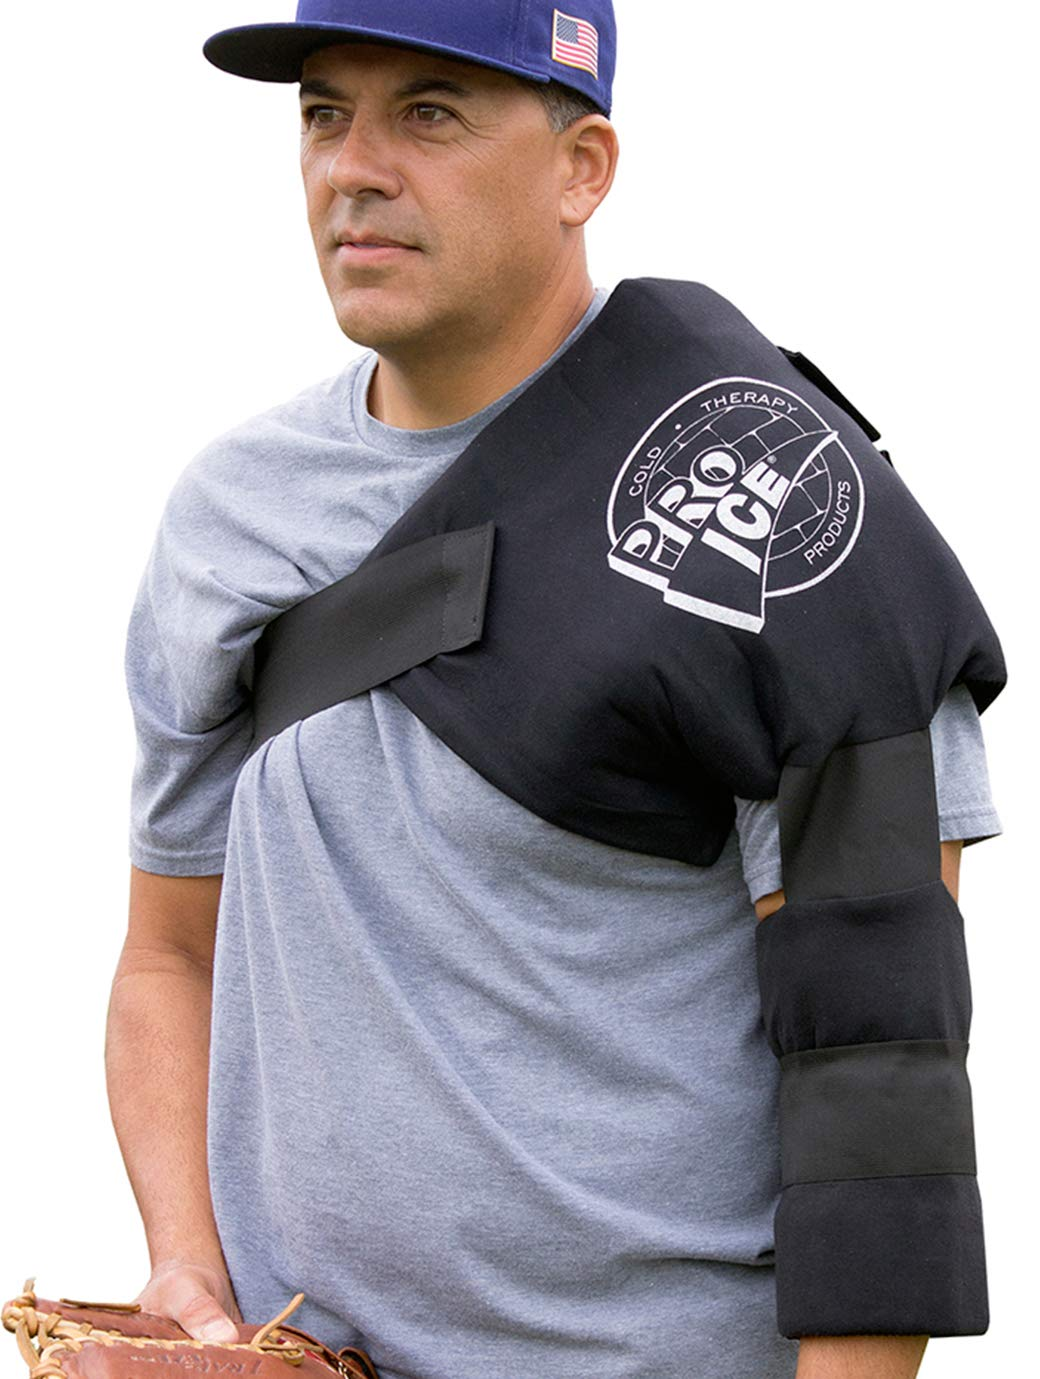 Pro Ice Cold Therapy Wrap for PRO Shoulder Elbow Arm Ice Pack PI240 to Treat Rotator Cuff Injury with Icing and Compression